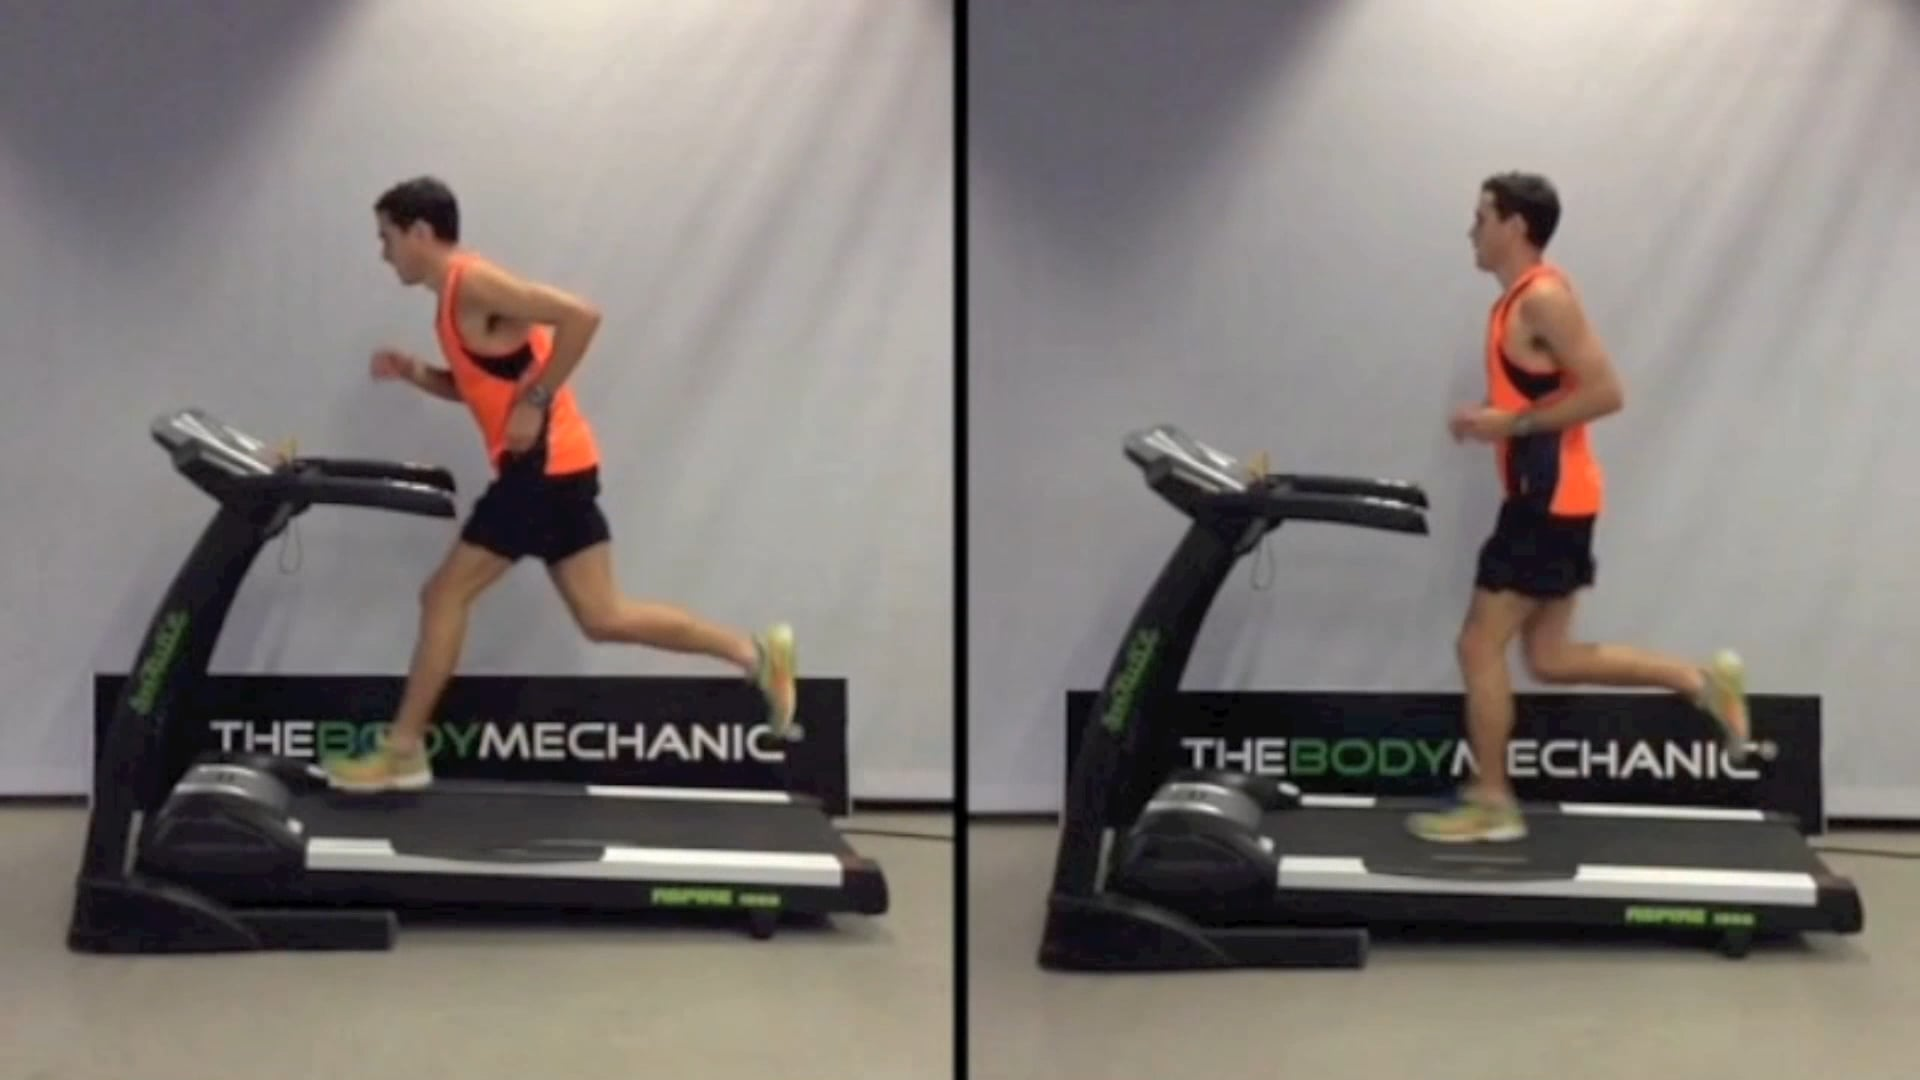 Treadmill Vs Running Outside: Which is best for runners?